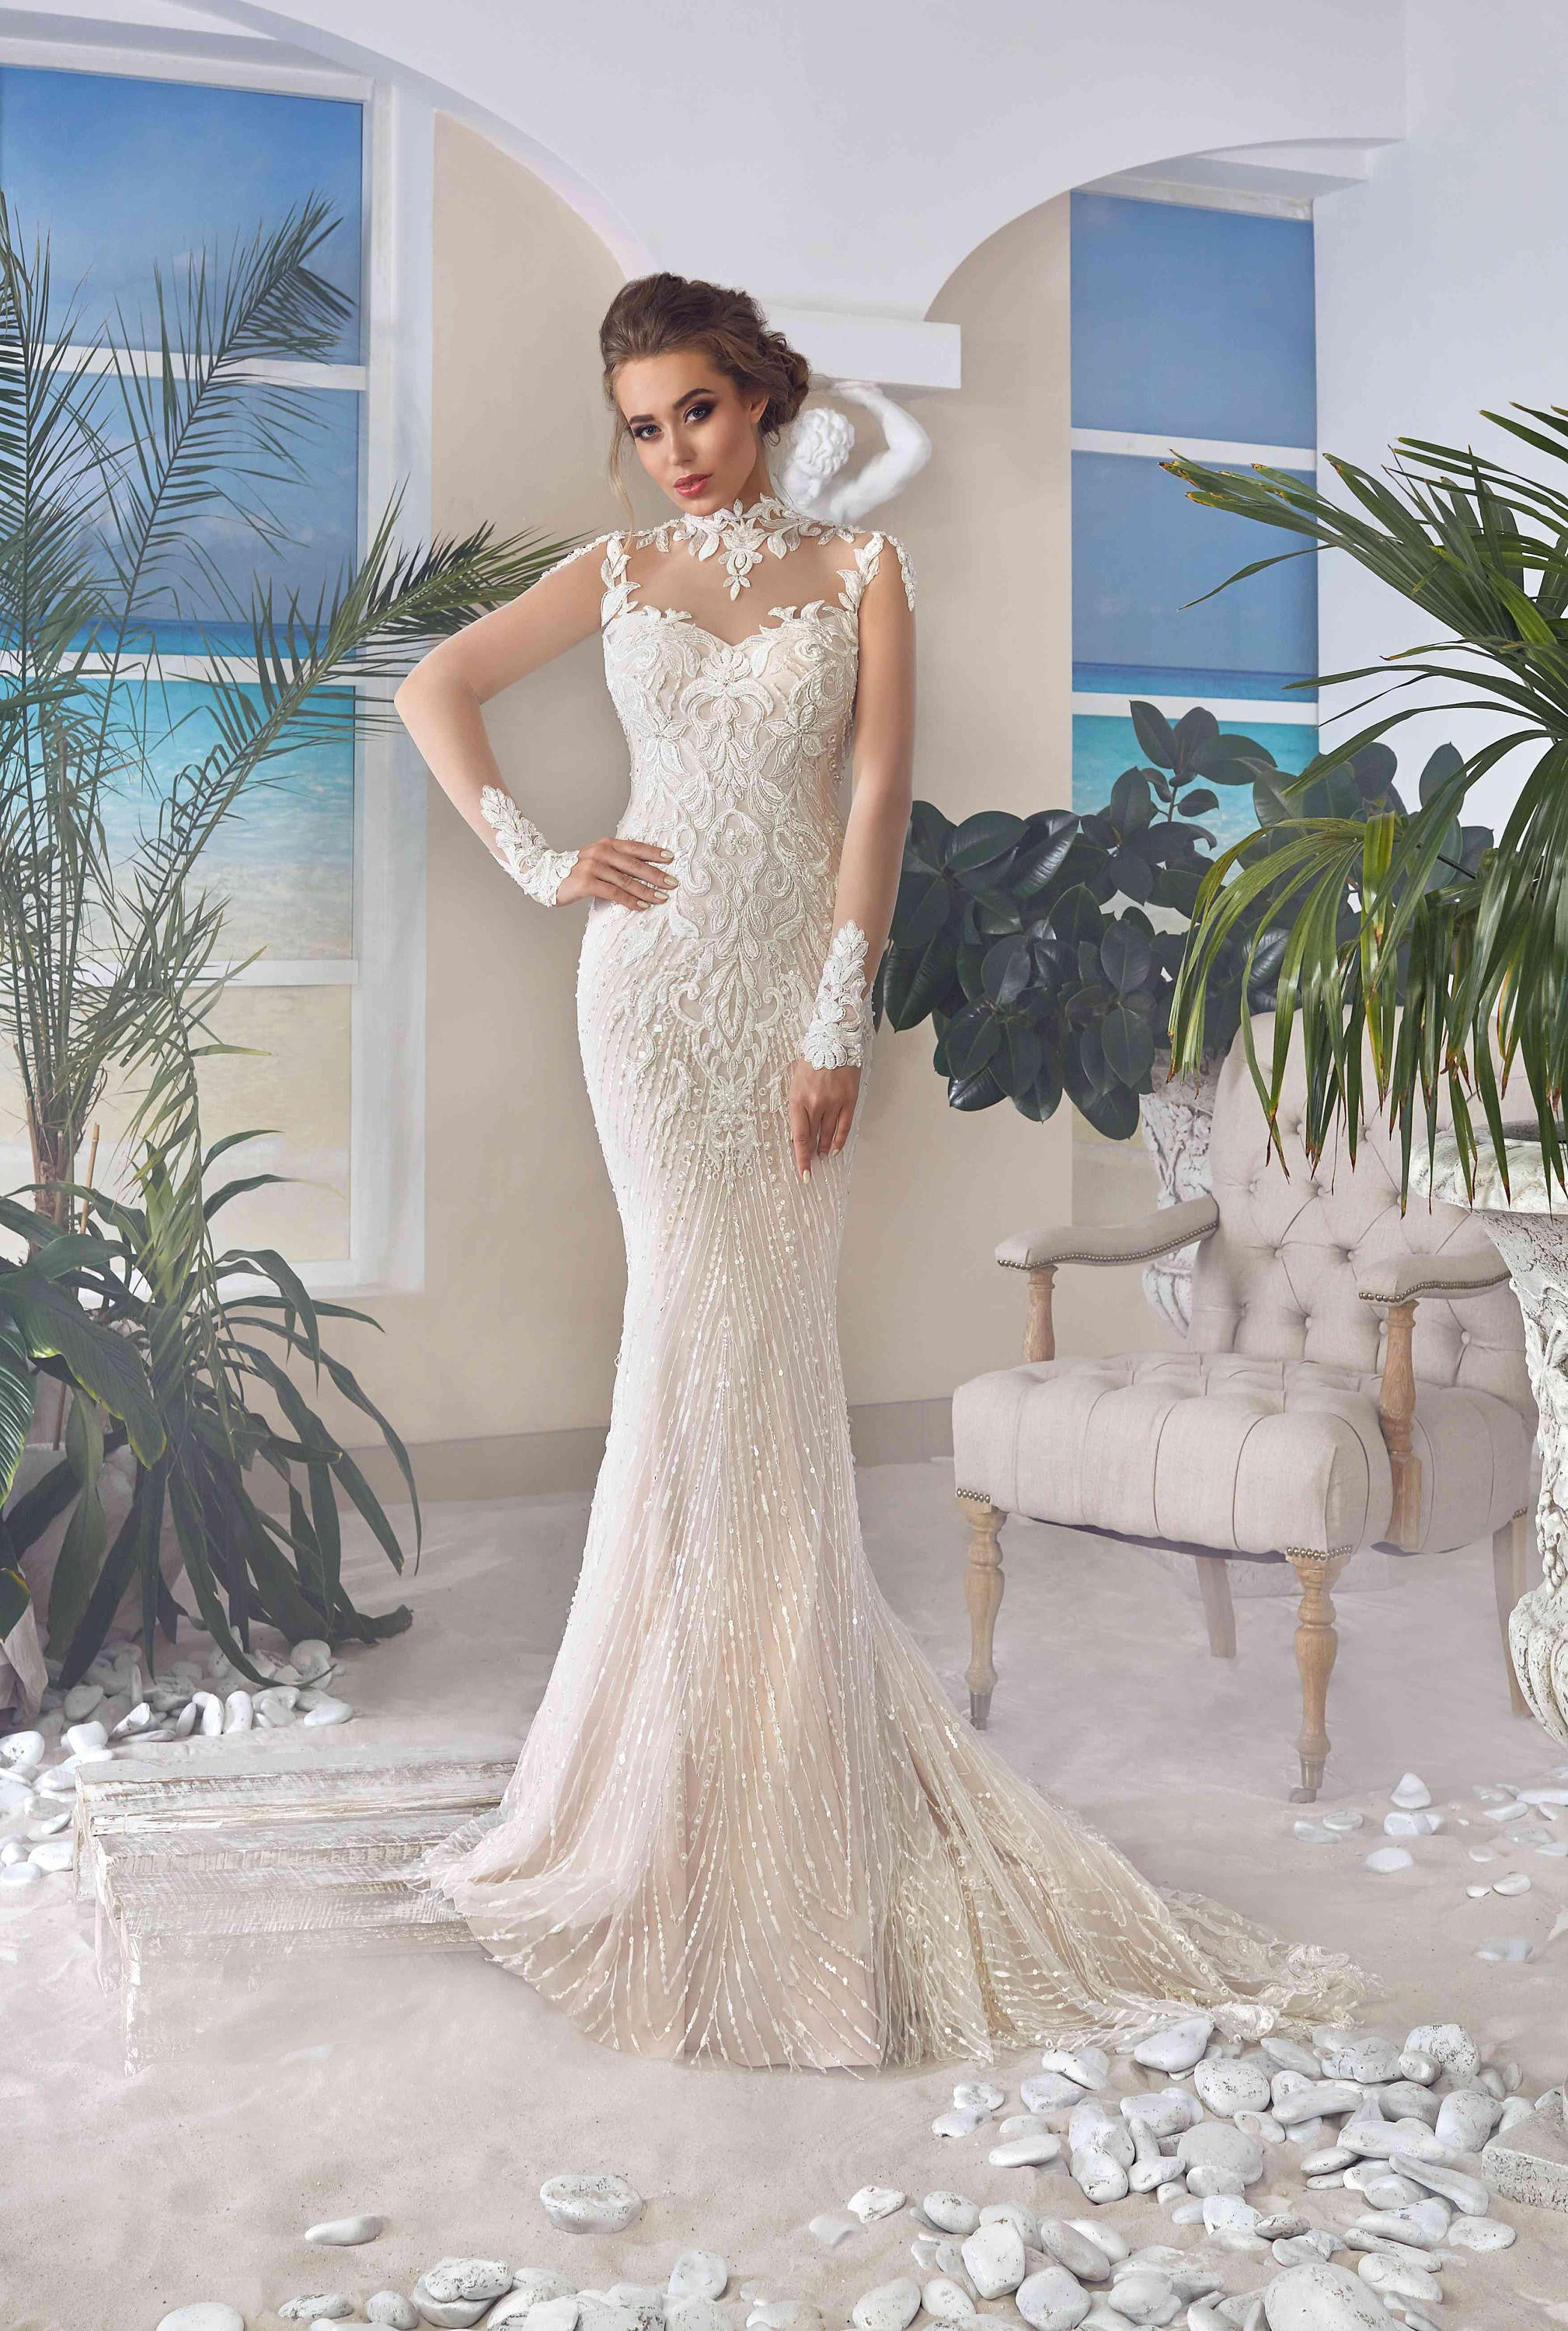 How to choose the perfect wedding dress by the bride\'s figure ...